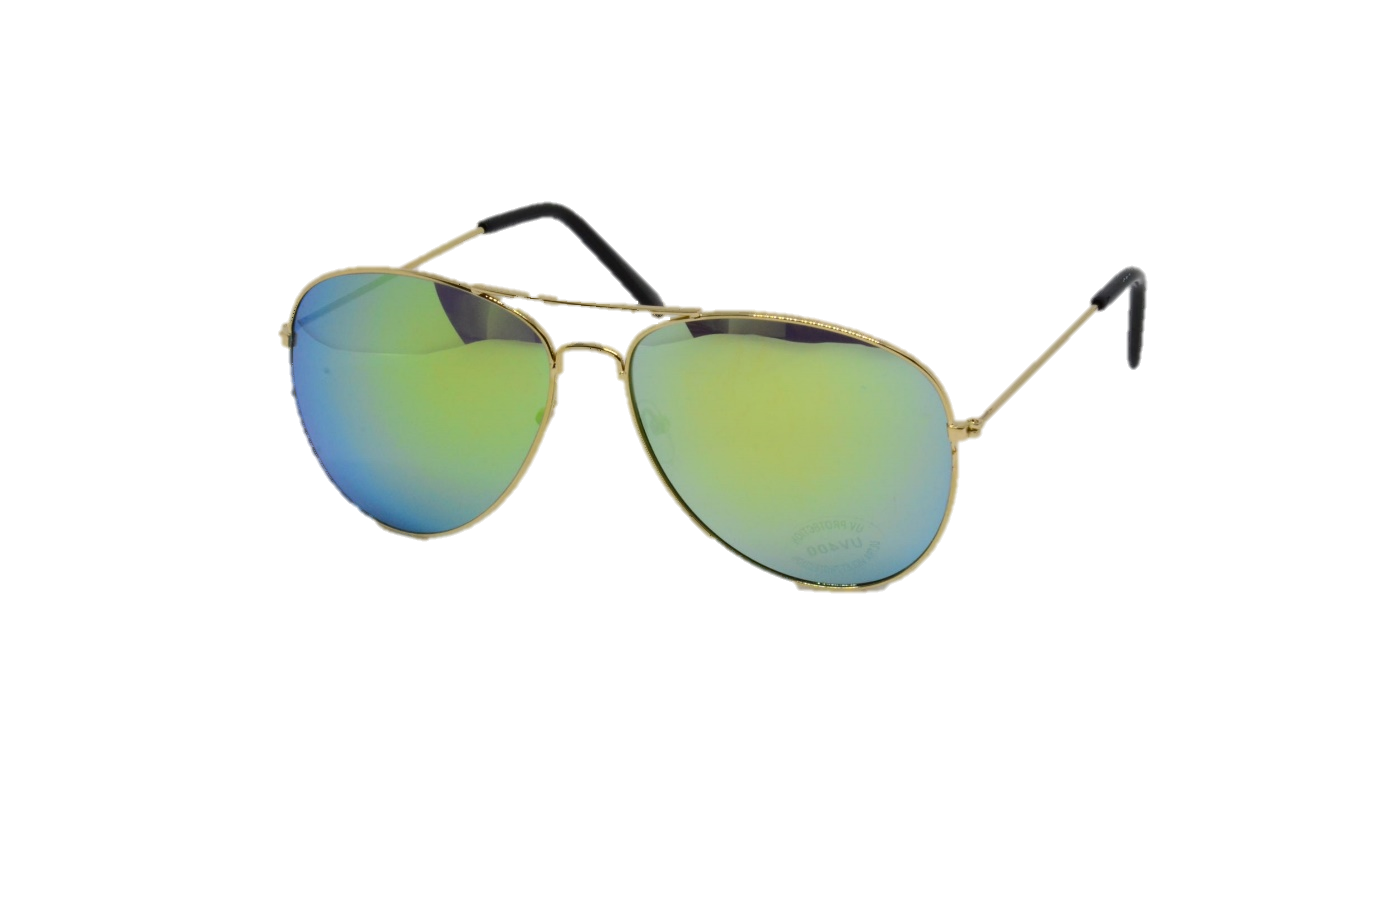 M-020LGG  - LARGE AVIATOR GOLD, GOLD MIRROR LENS